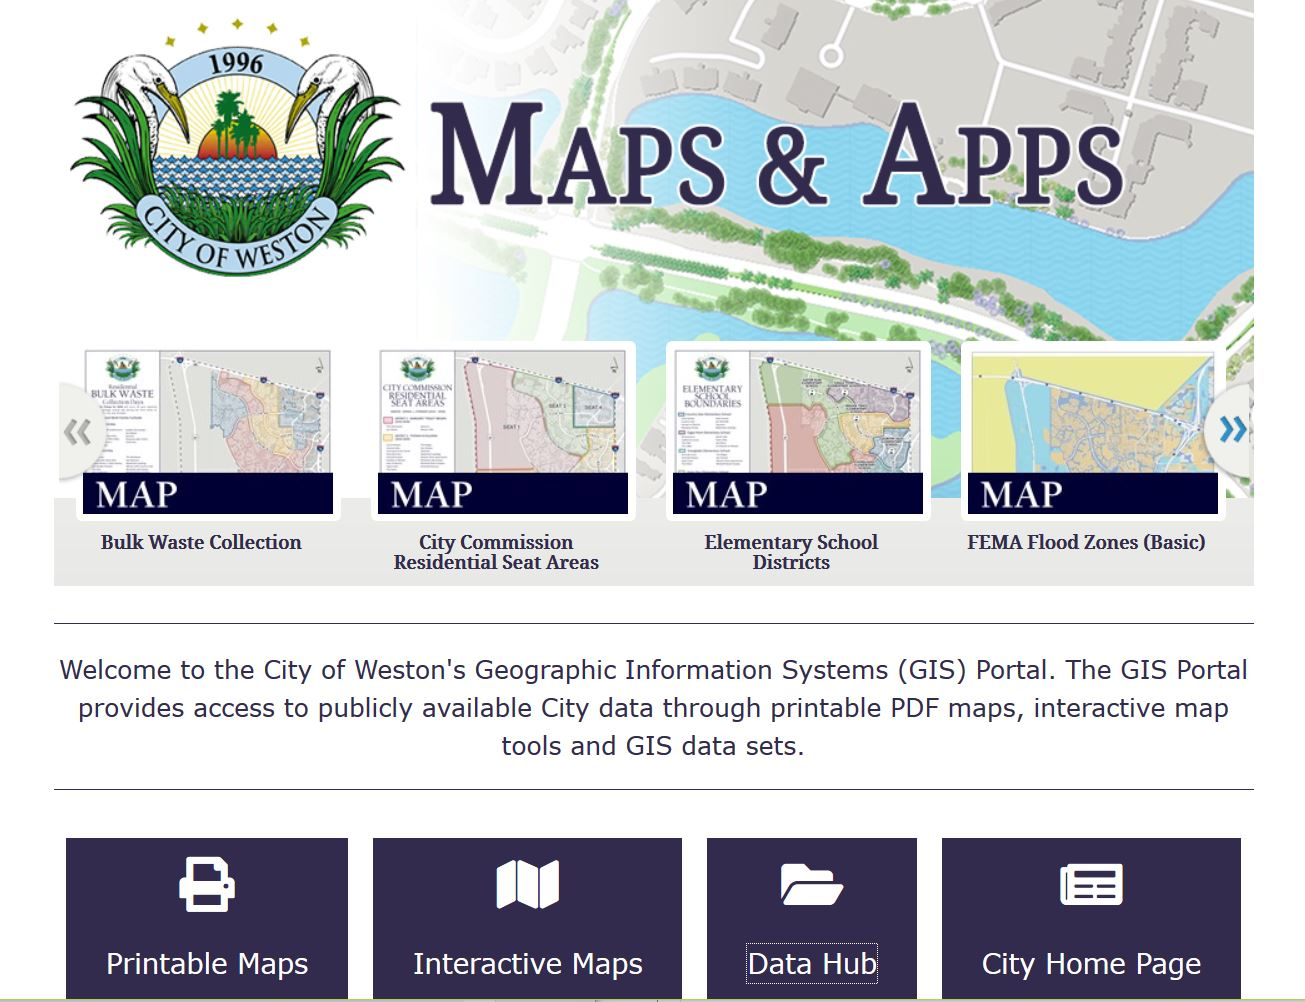 Maps&Apps